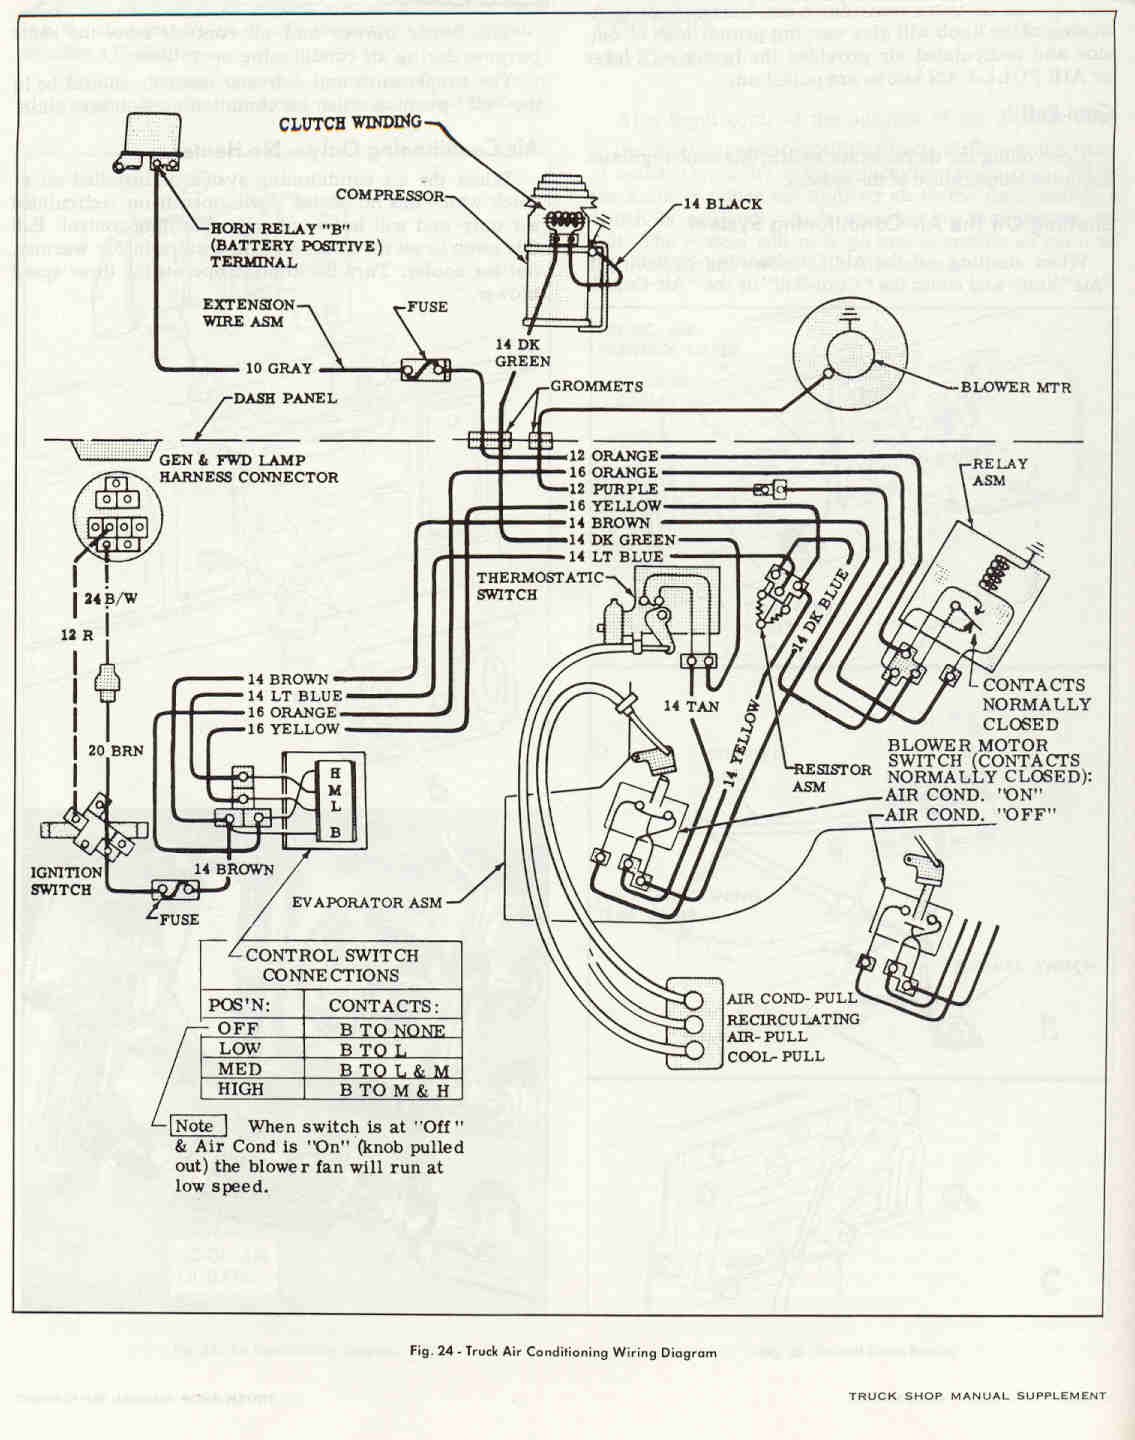 1982 chevrolet c10 wiring diagram what is a tree in math ac heater fan for 66 chevy message